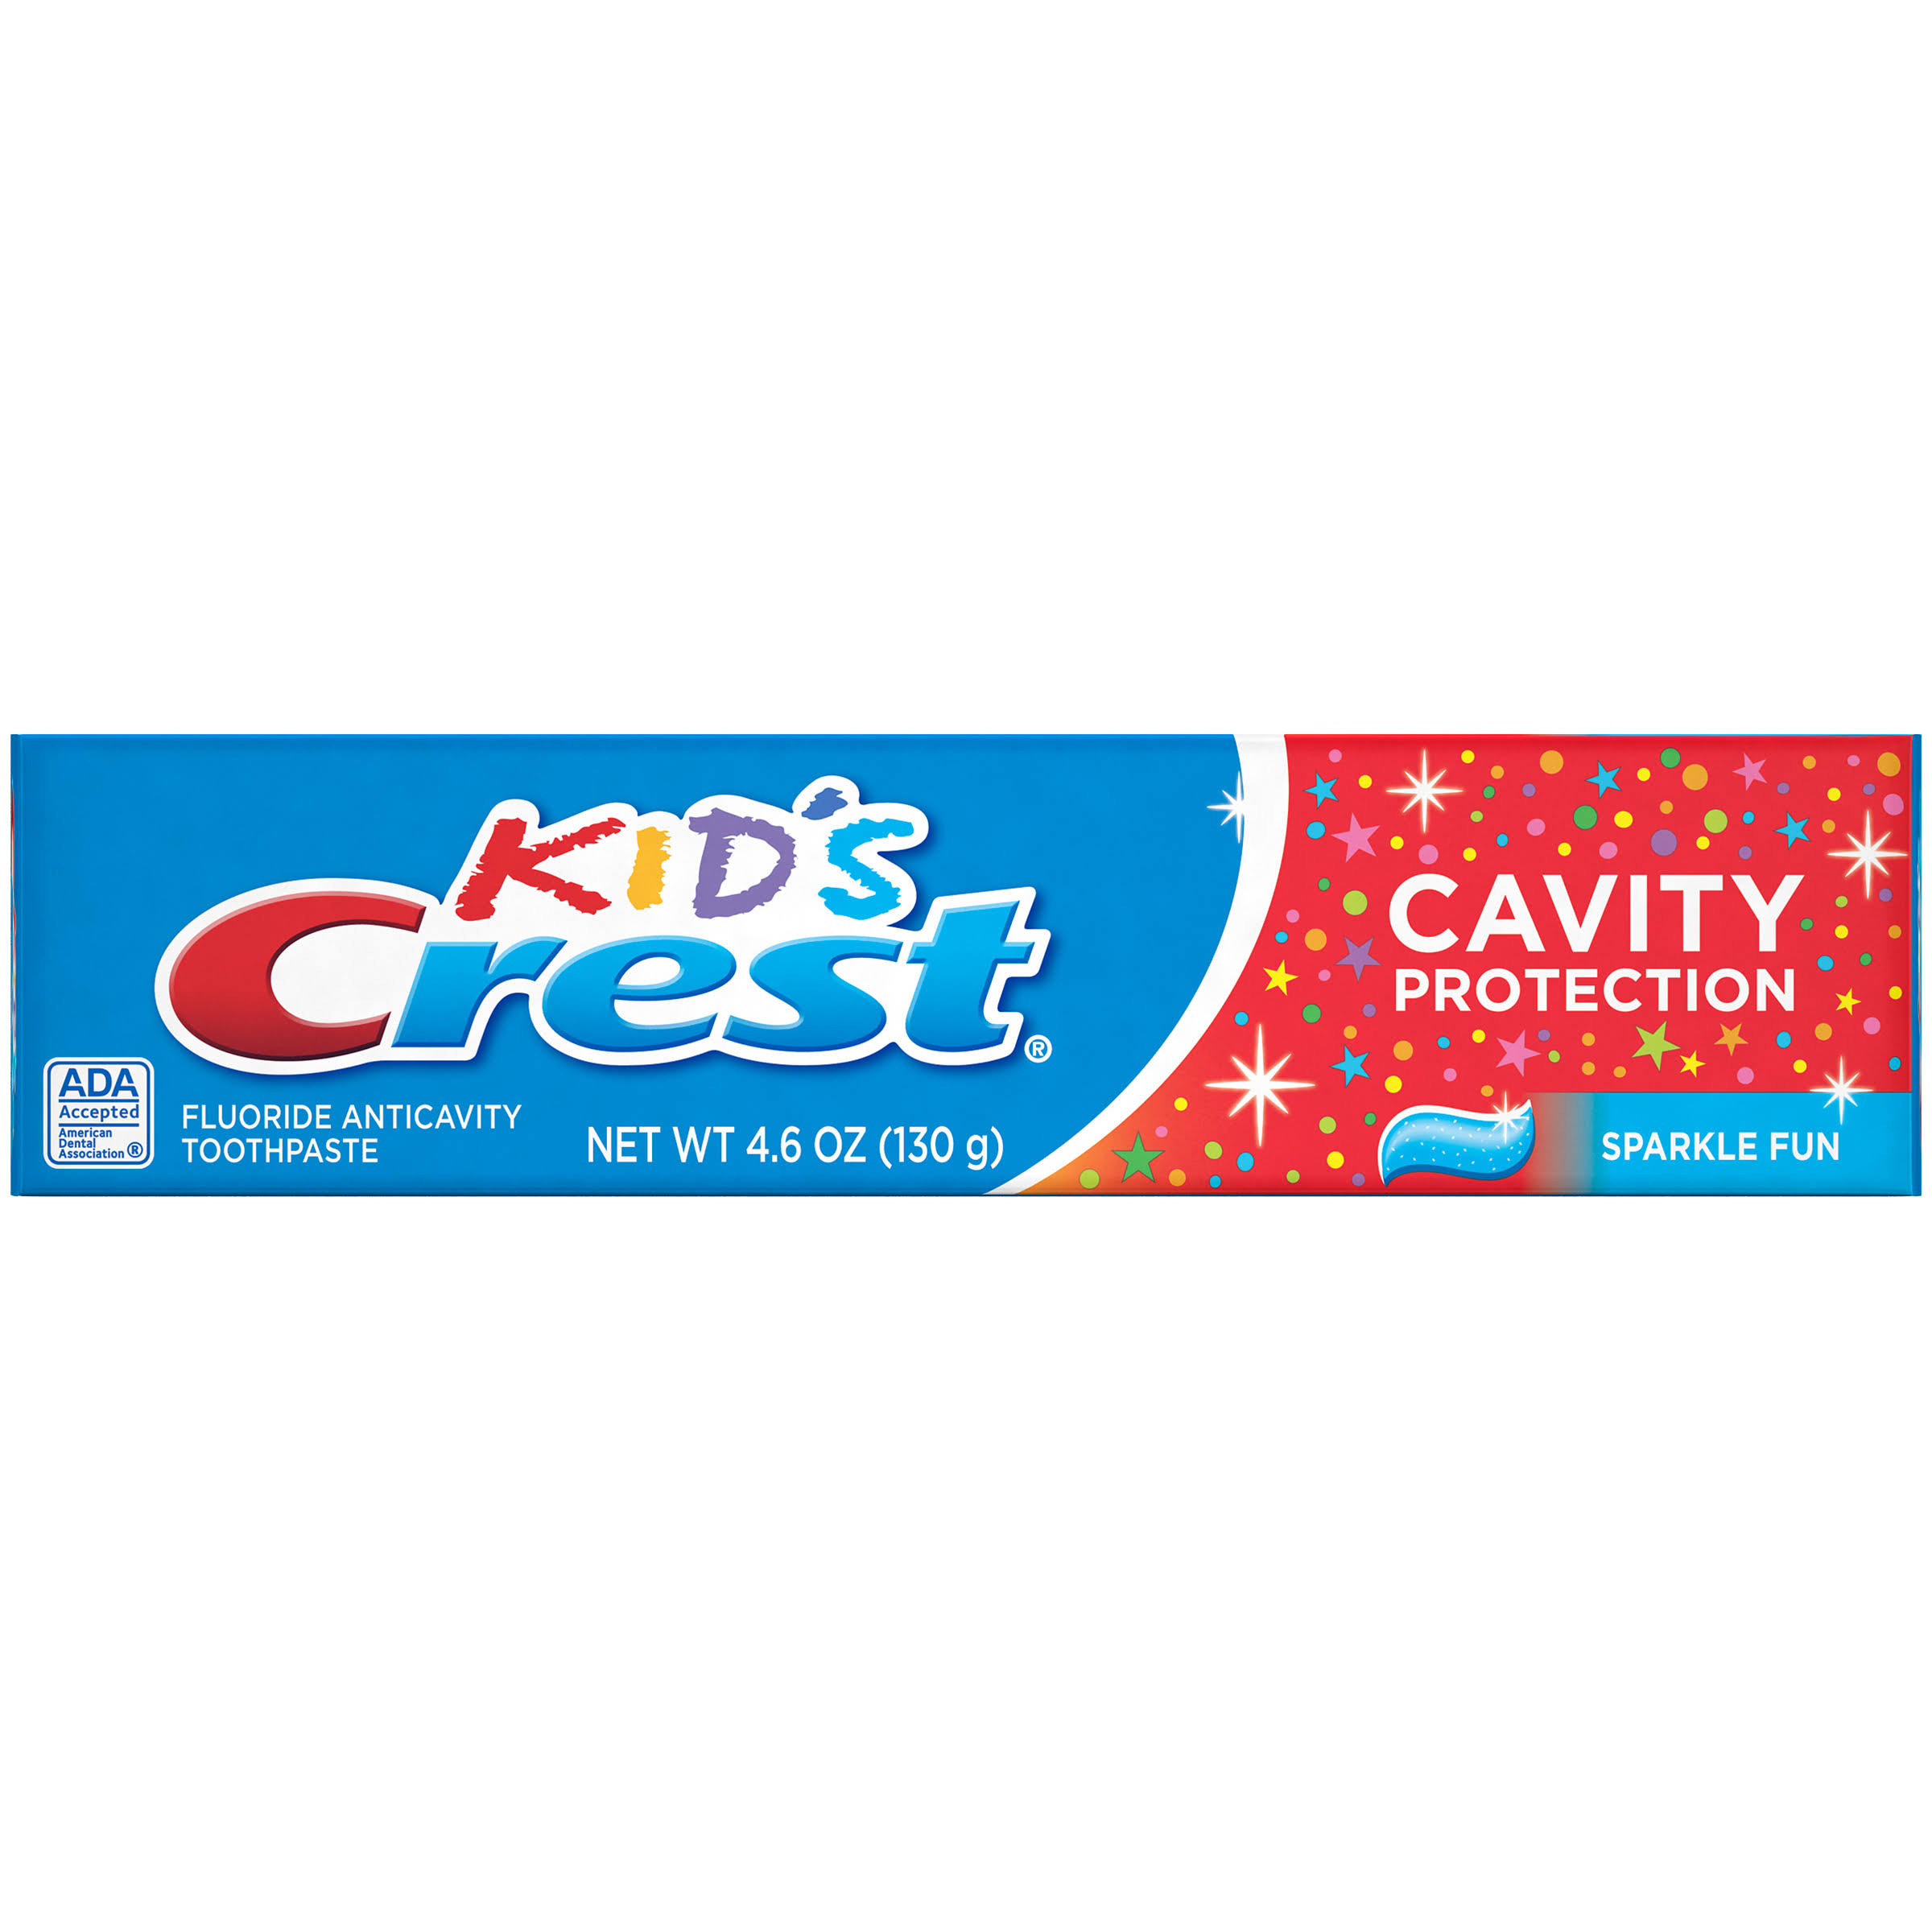 Crest Kid's Cavity Protection Sparkle Fun Fluoride Anticavity Toothpaste - 4.6oz